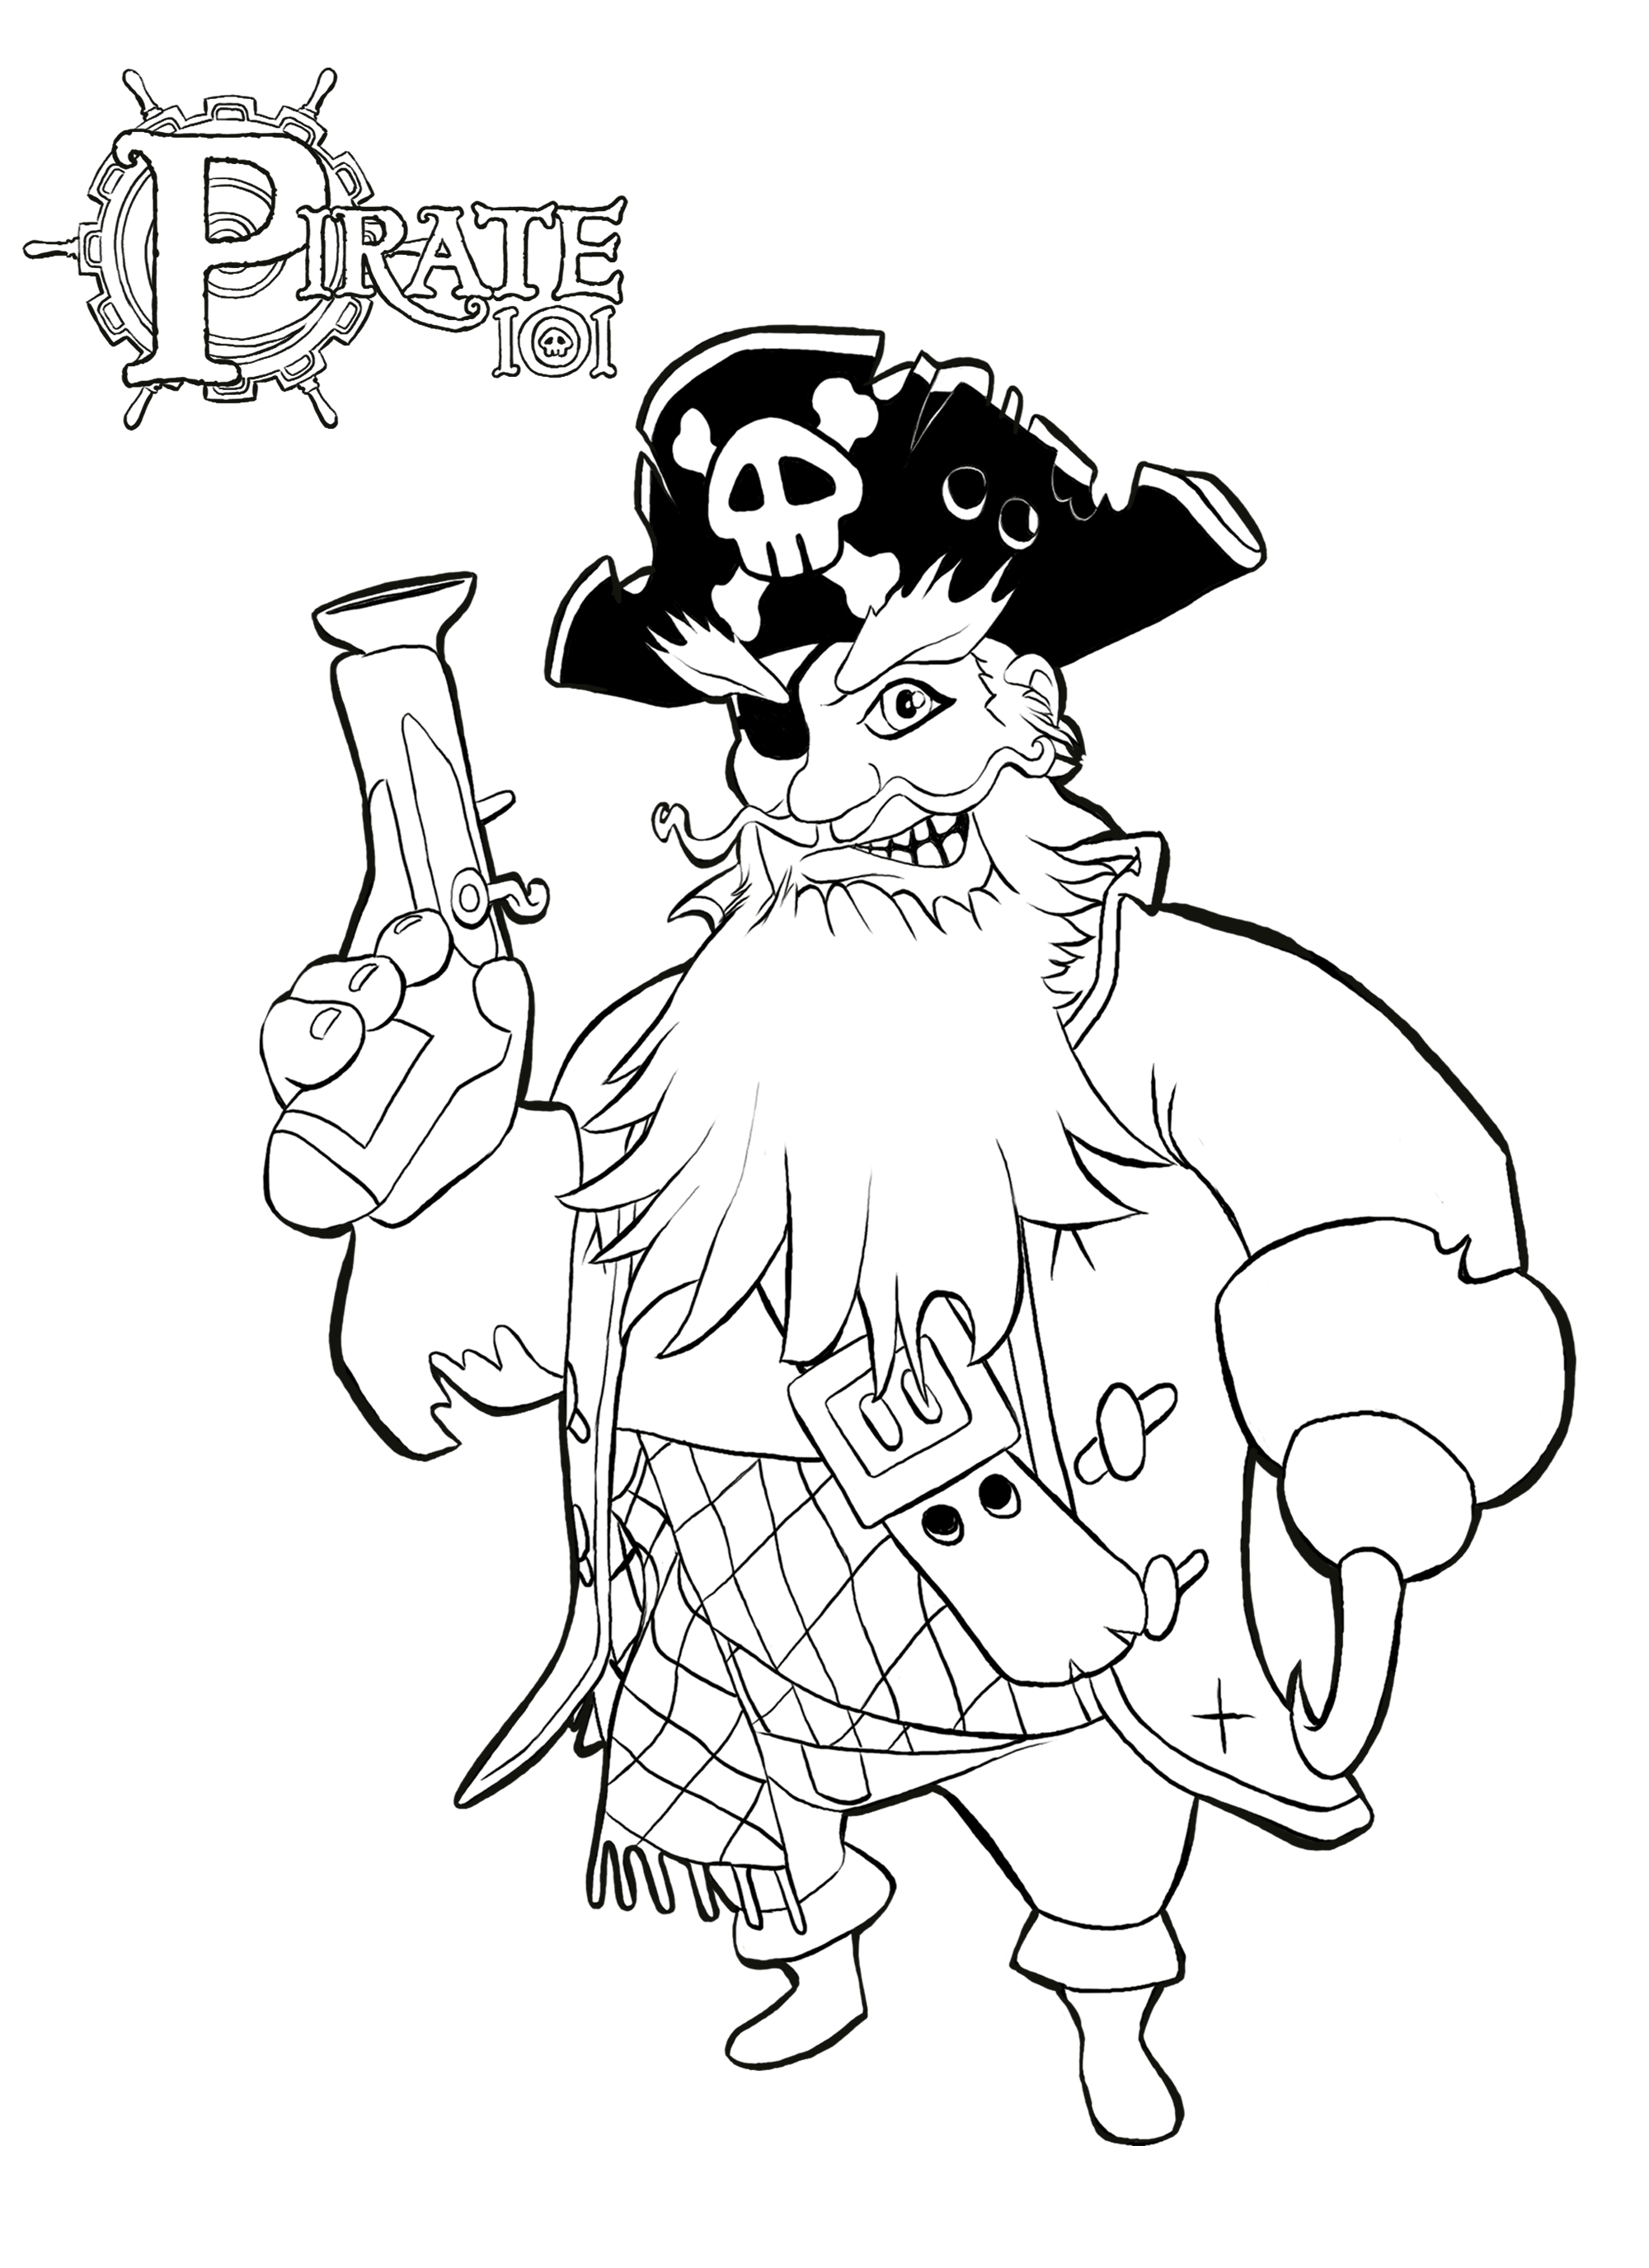 pirate coloring pages pirate101 free online game rh pirate101 com Geisha Kimono Coloring Pages Wizard Hat Coloring Pages Printable